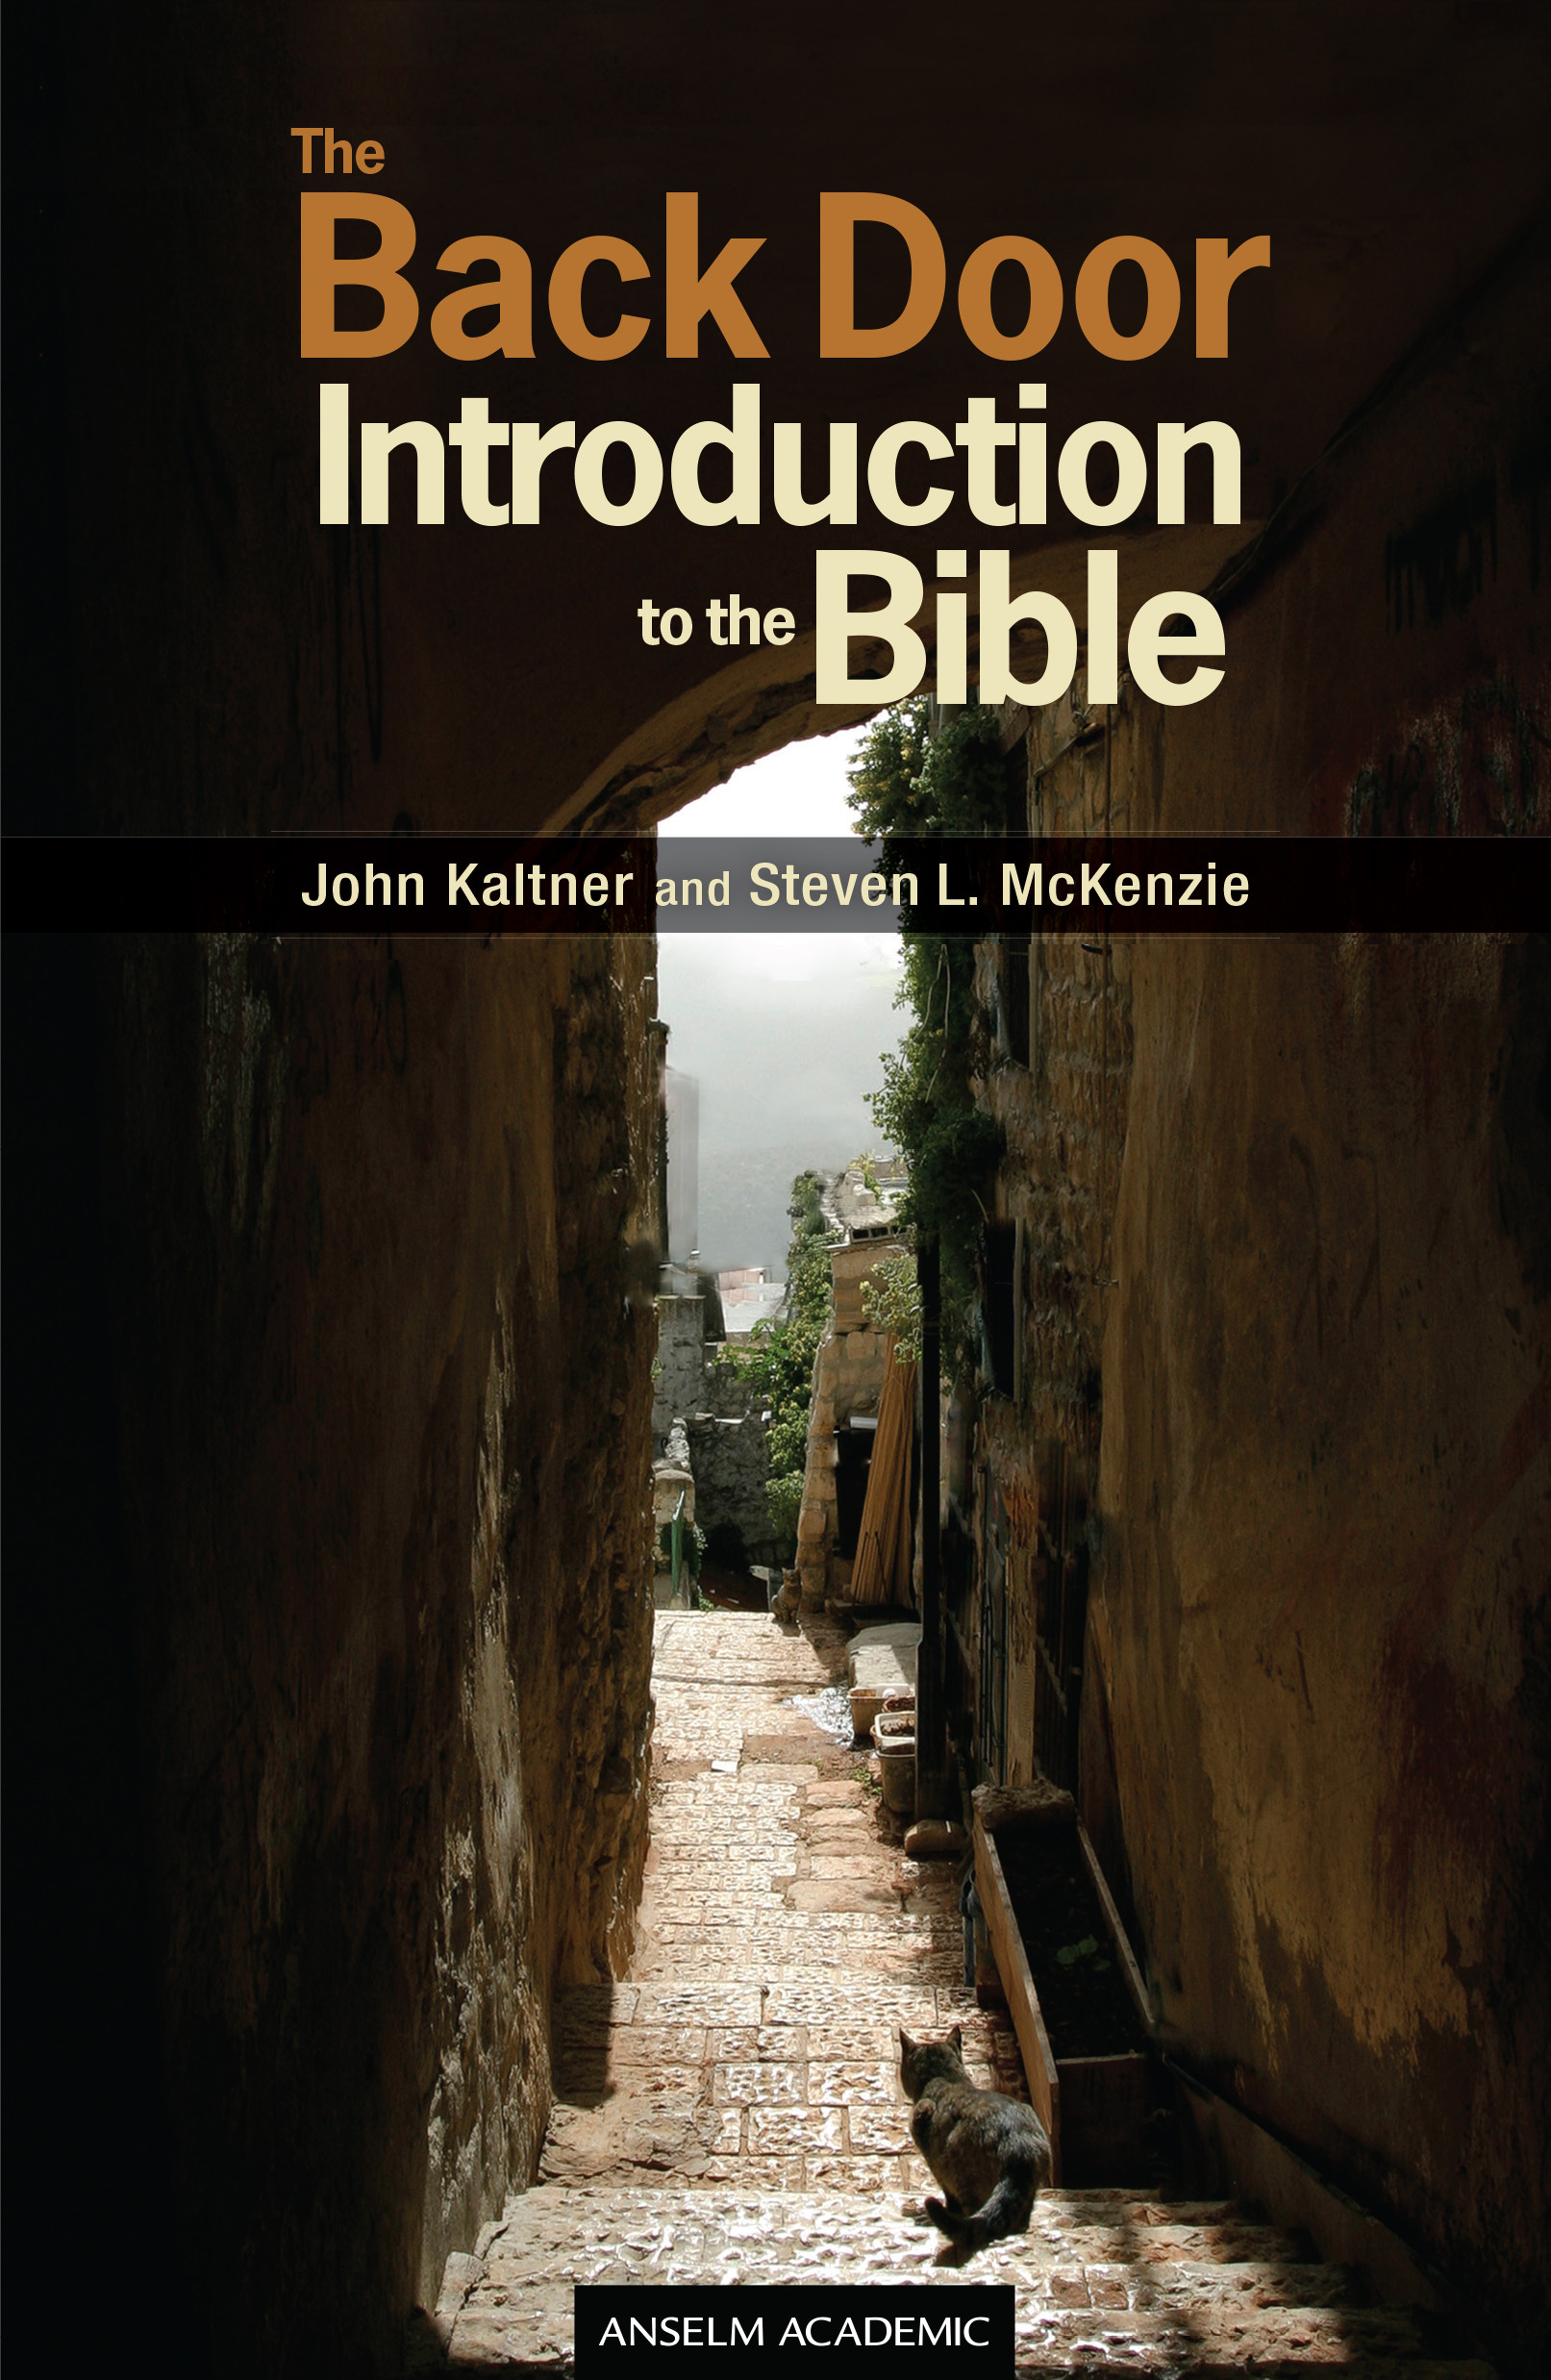 The Back Door Introduction to the Bible